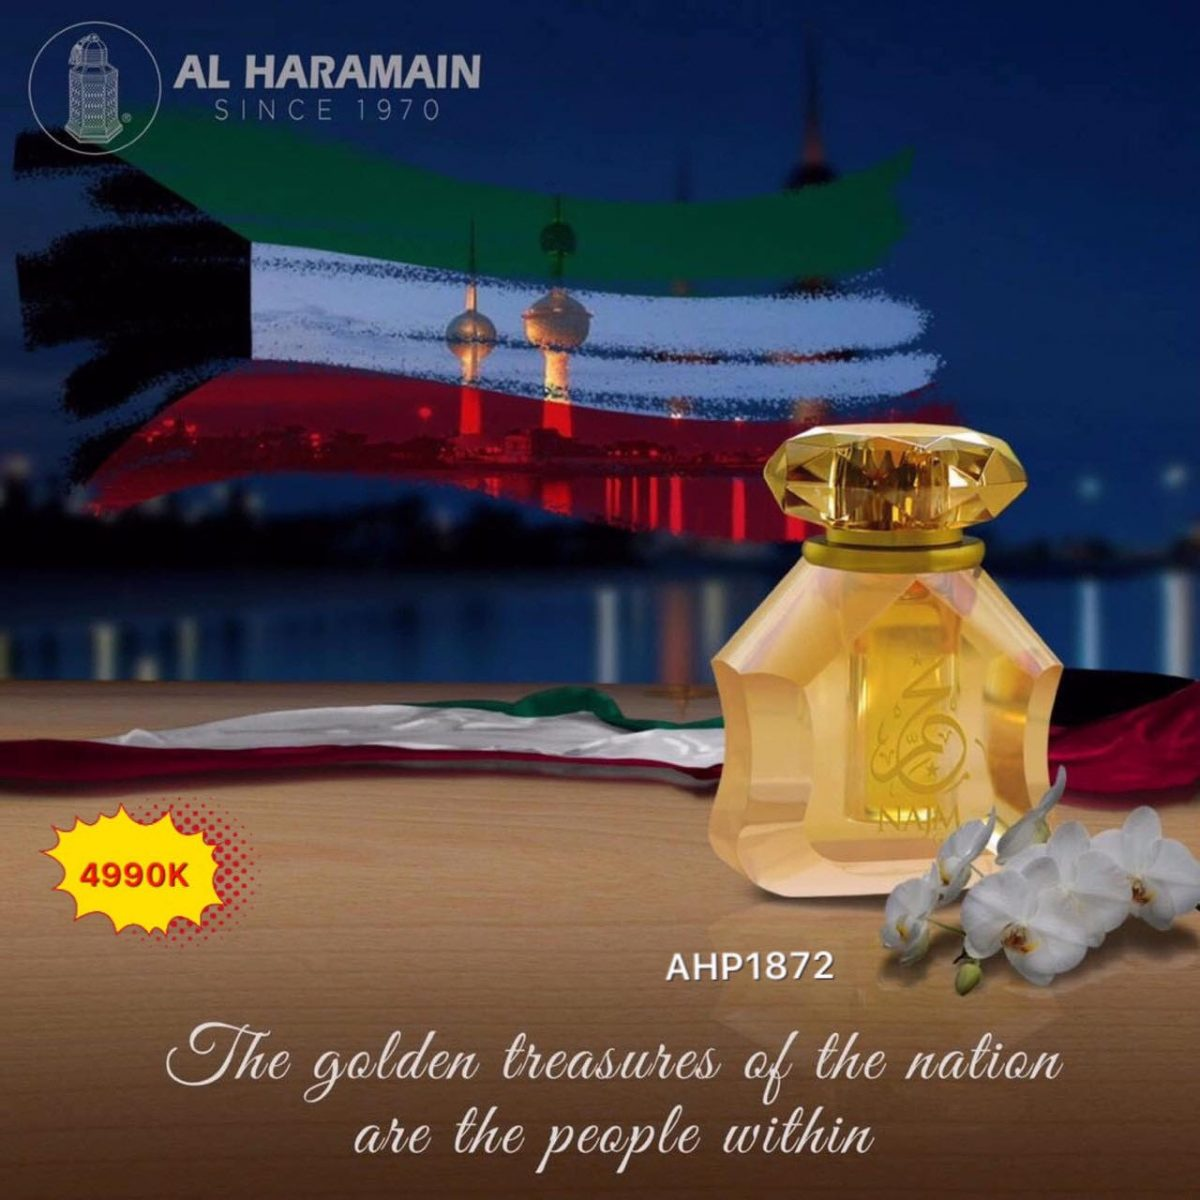 Al Haramain Najm Gold 18ml - MSP: AHP1872